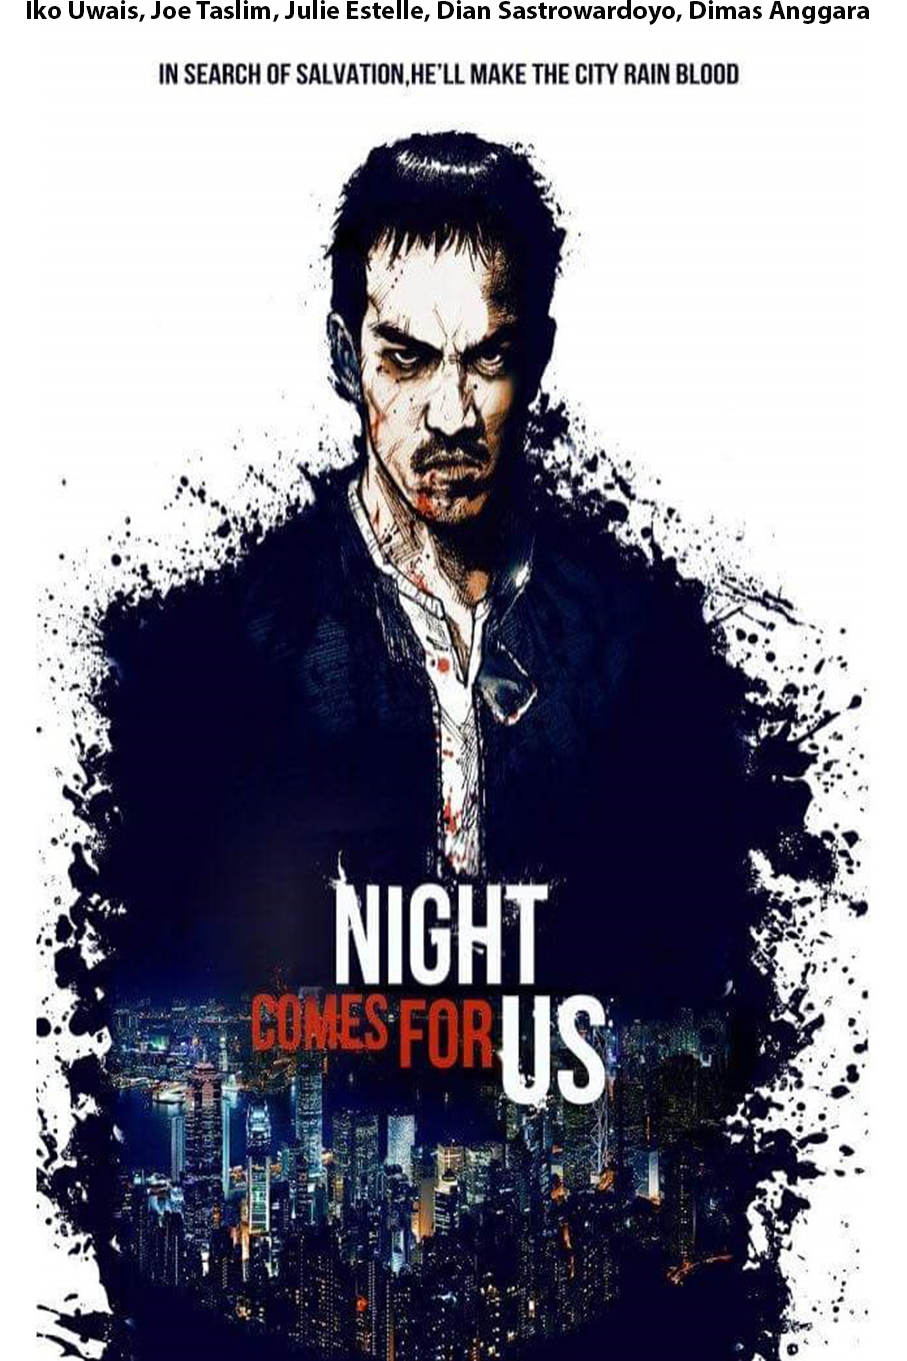 The Night Comes For Us [2018 Indonesia Movie] Action, Crime, Thriller